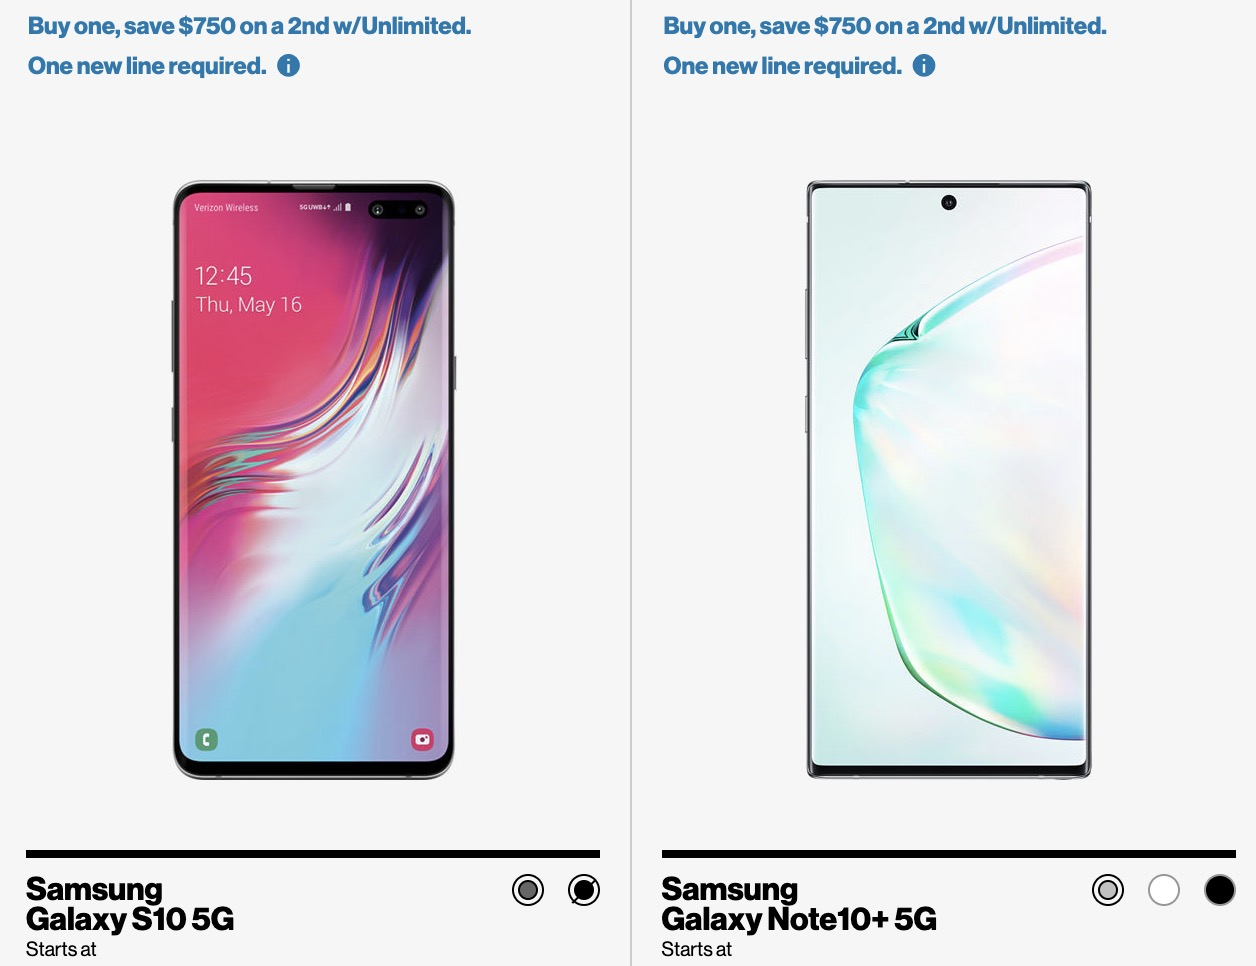 Samsung rolls out Android 10 to Galaxy S10